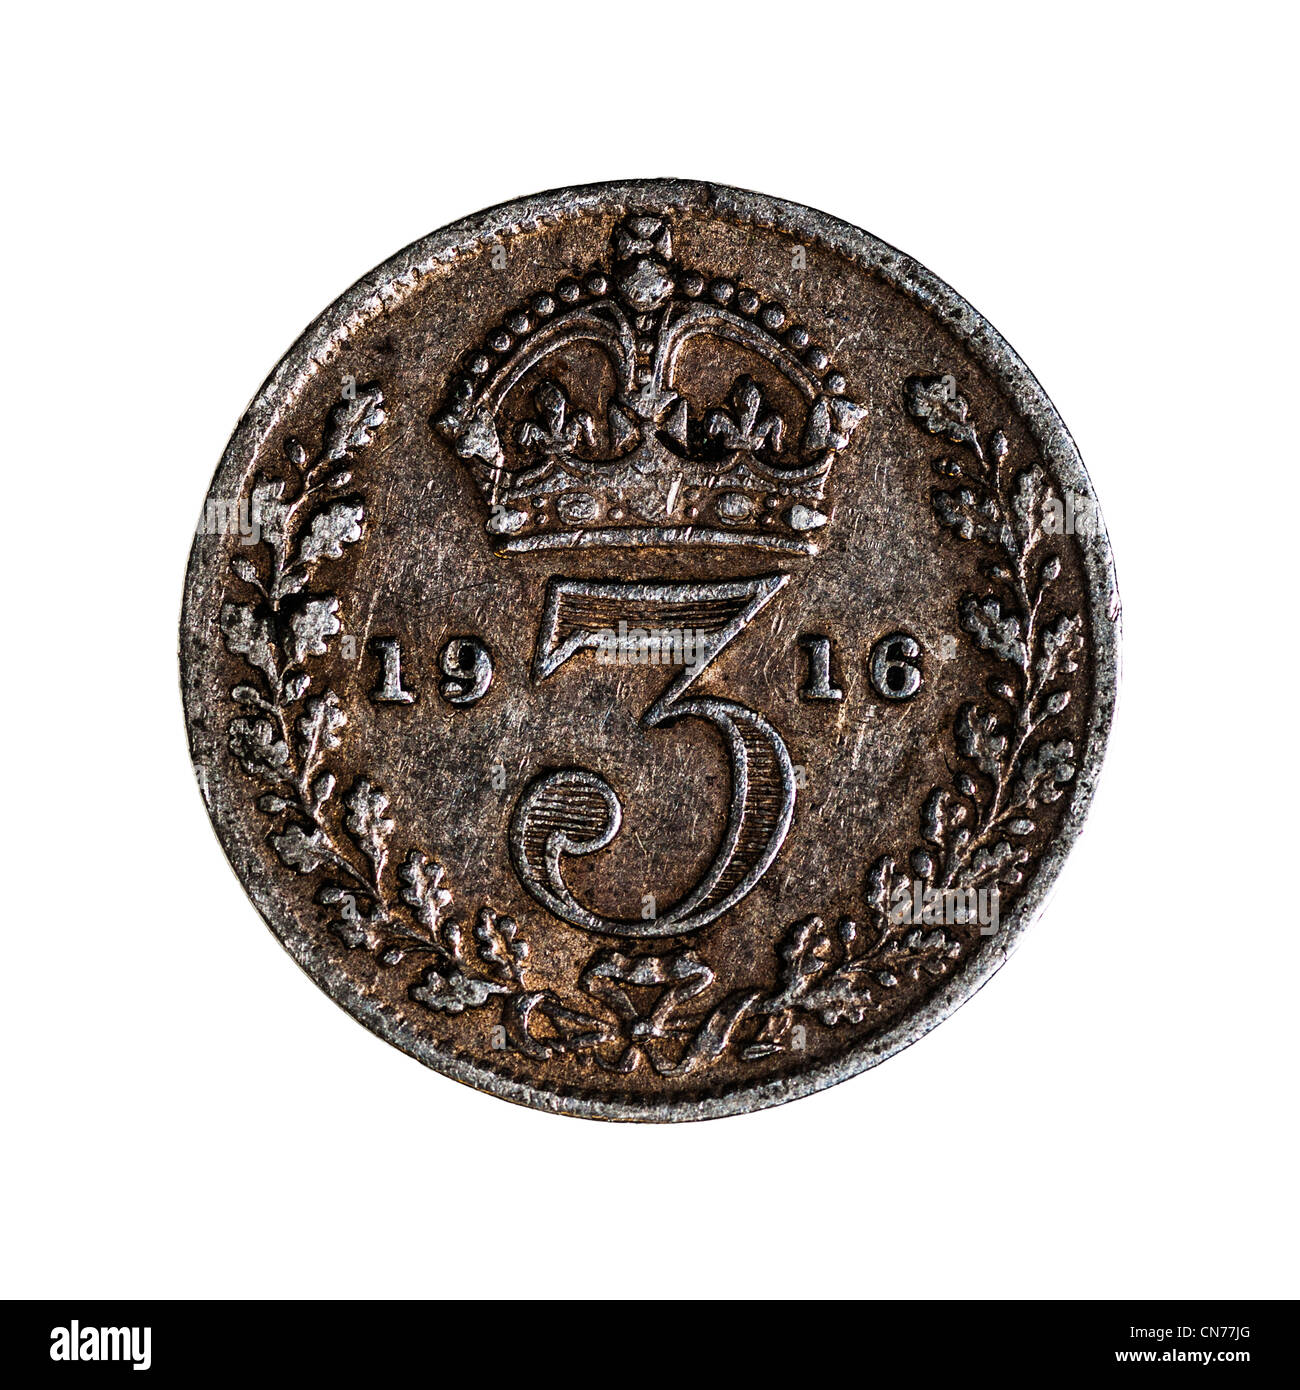 A pre decimal George V British Silver Threepence ( 1st issue ) 3 pence coin on a white background - Stock Image